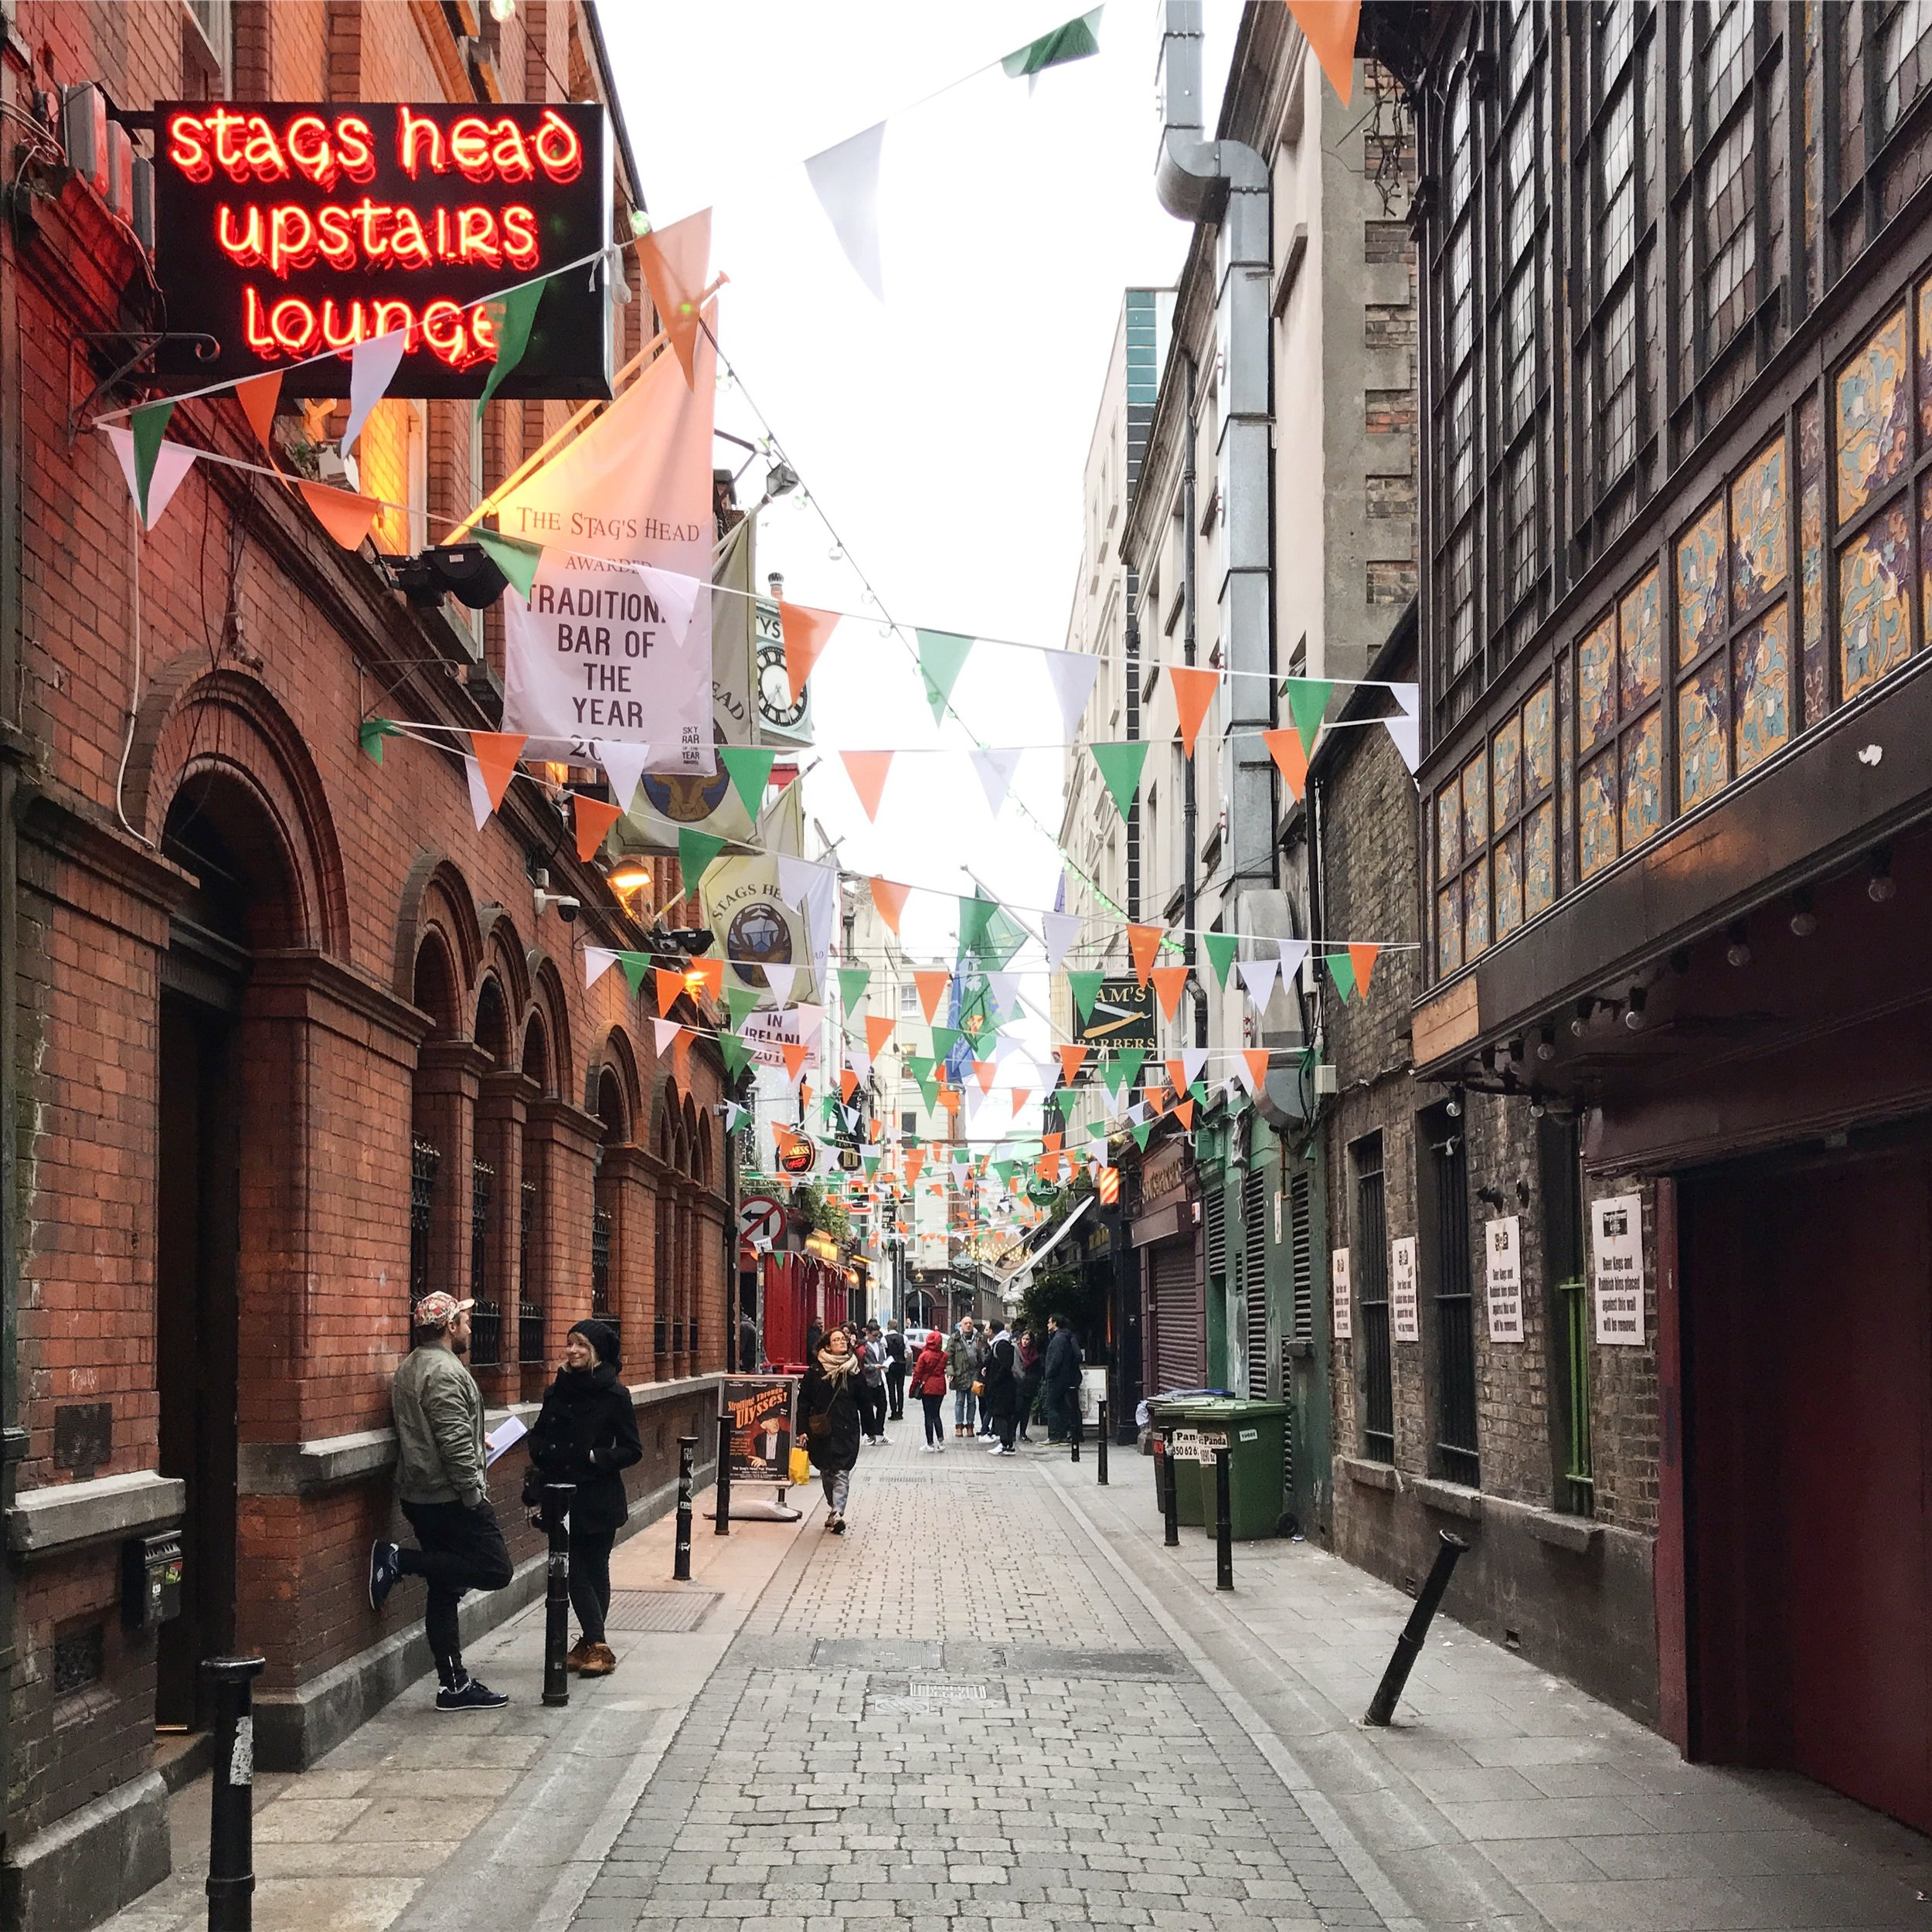 The Stag's Head  on Dame Lane is a traditional Irish pub with live music